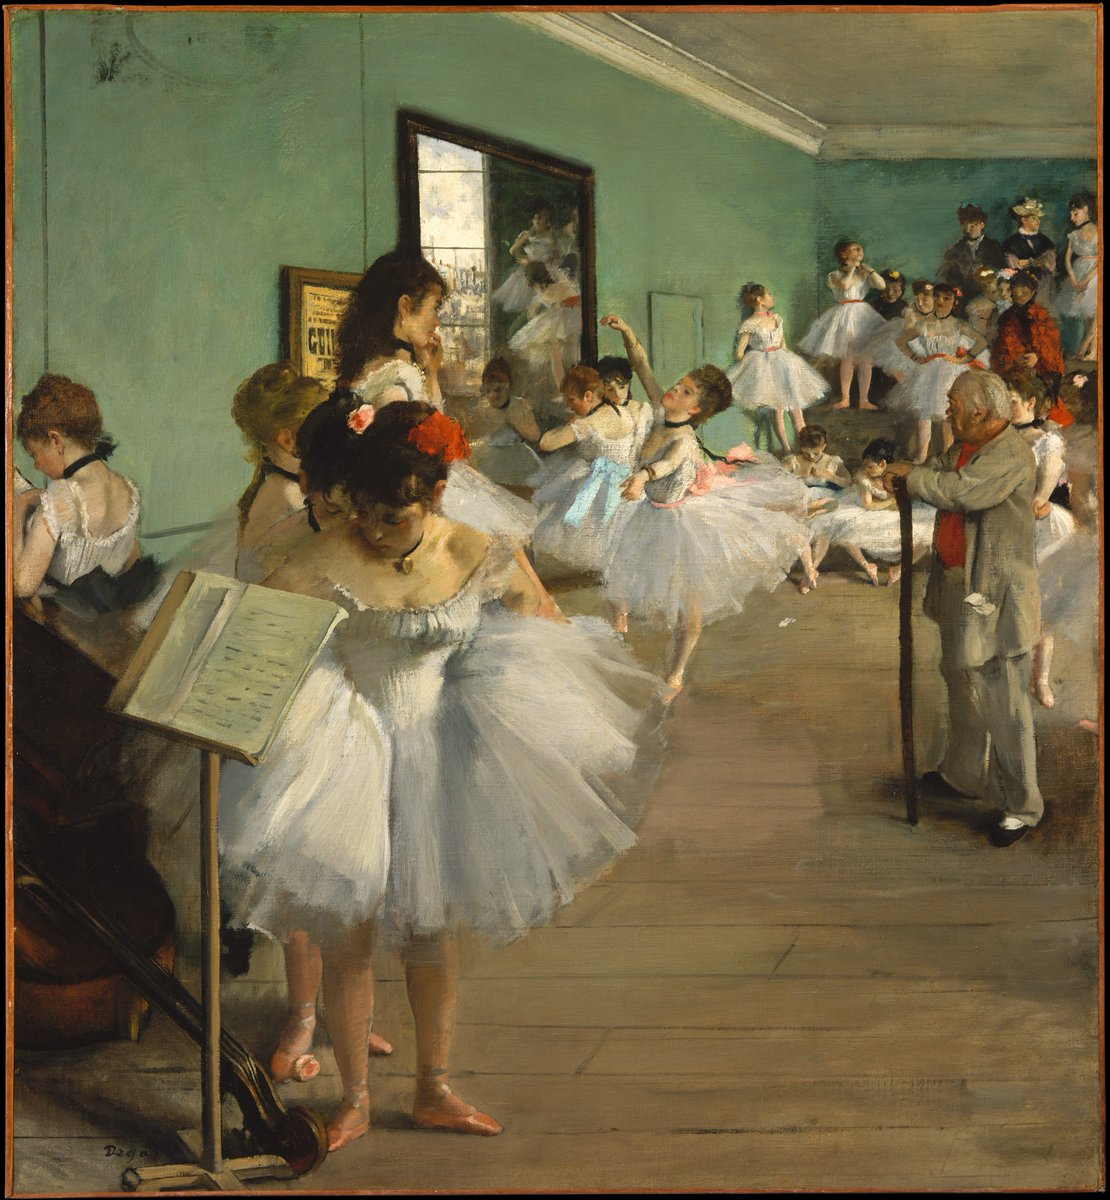 Edgar Degas was born on this day in 1834. This work, 'The Dance Class,' and its variant in the Musée d'Orsay, Paris, represent the most ambitious paintings #Degas devoted to the theme of the dance. https://t.co/qcR2jvW92S